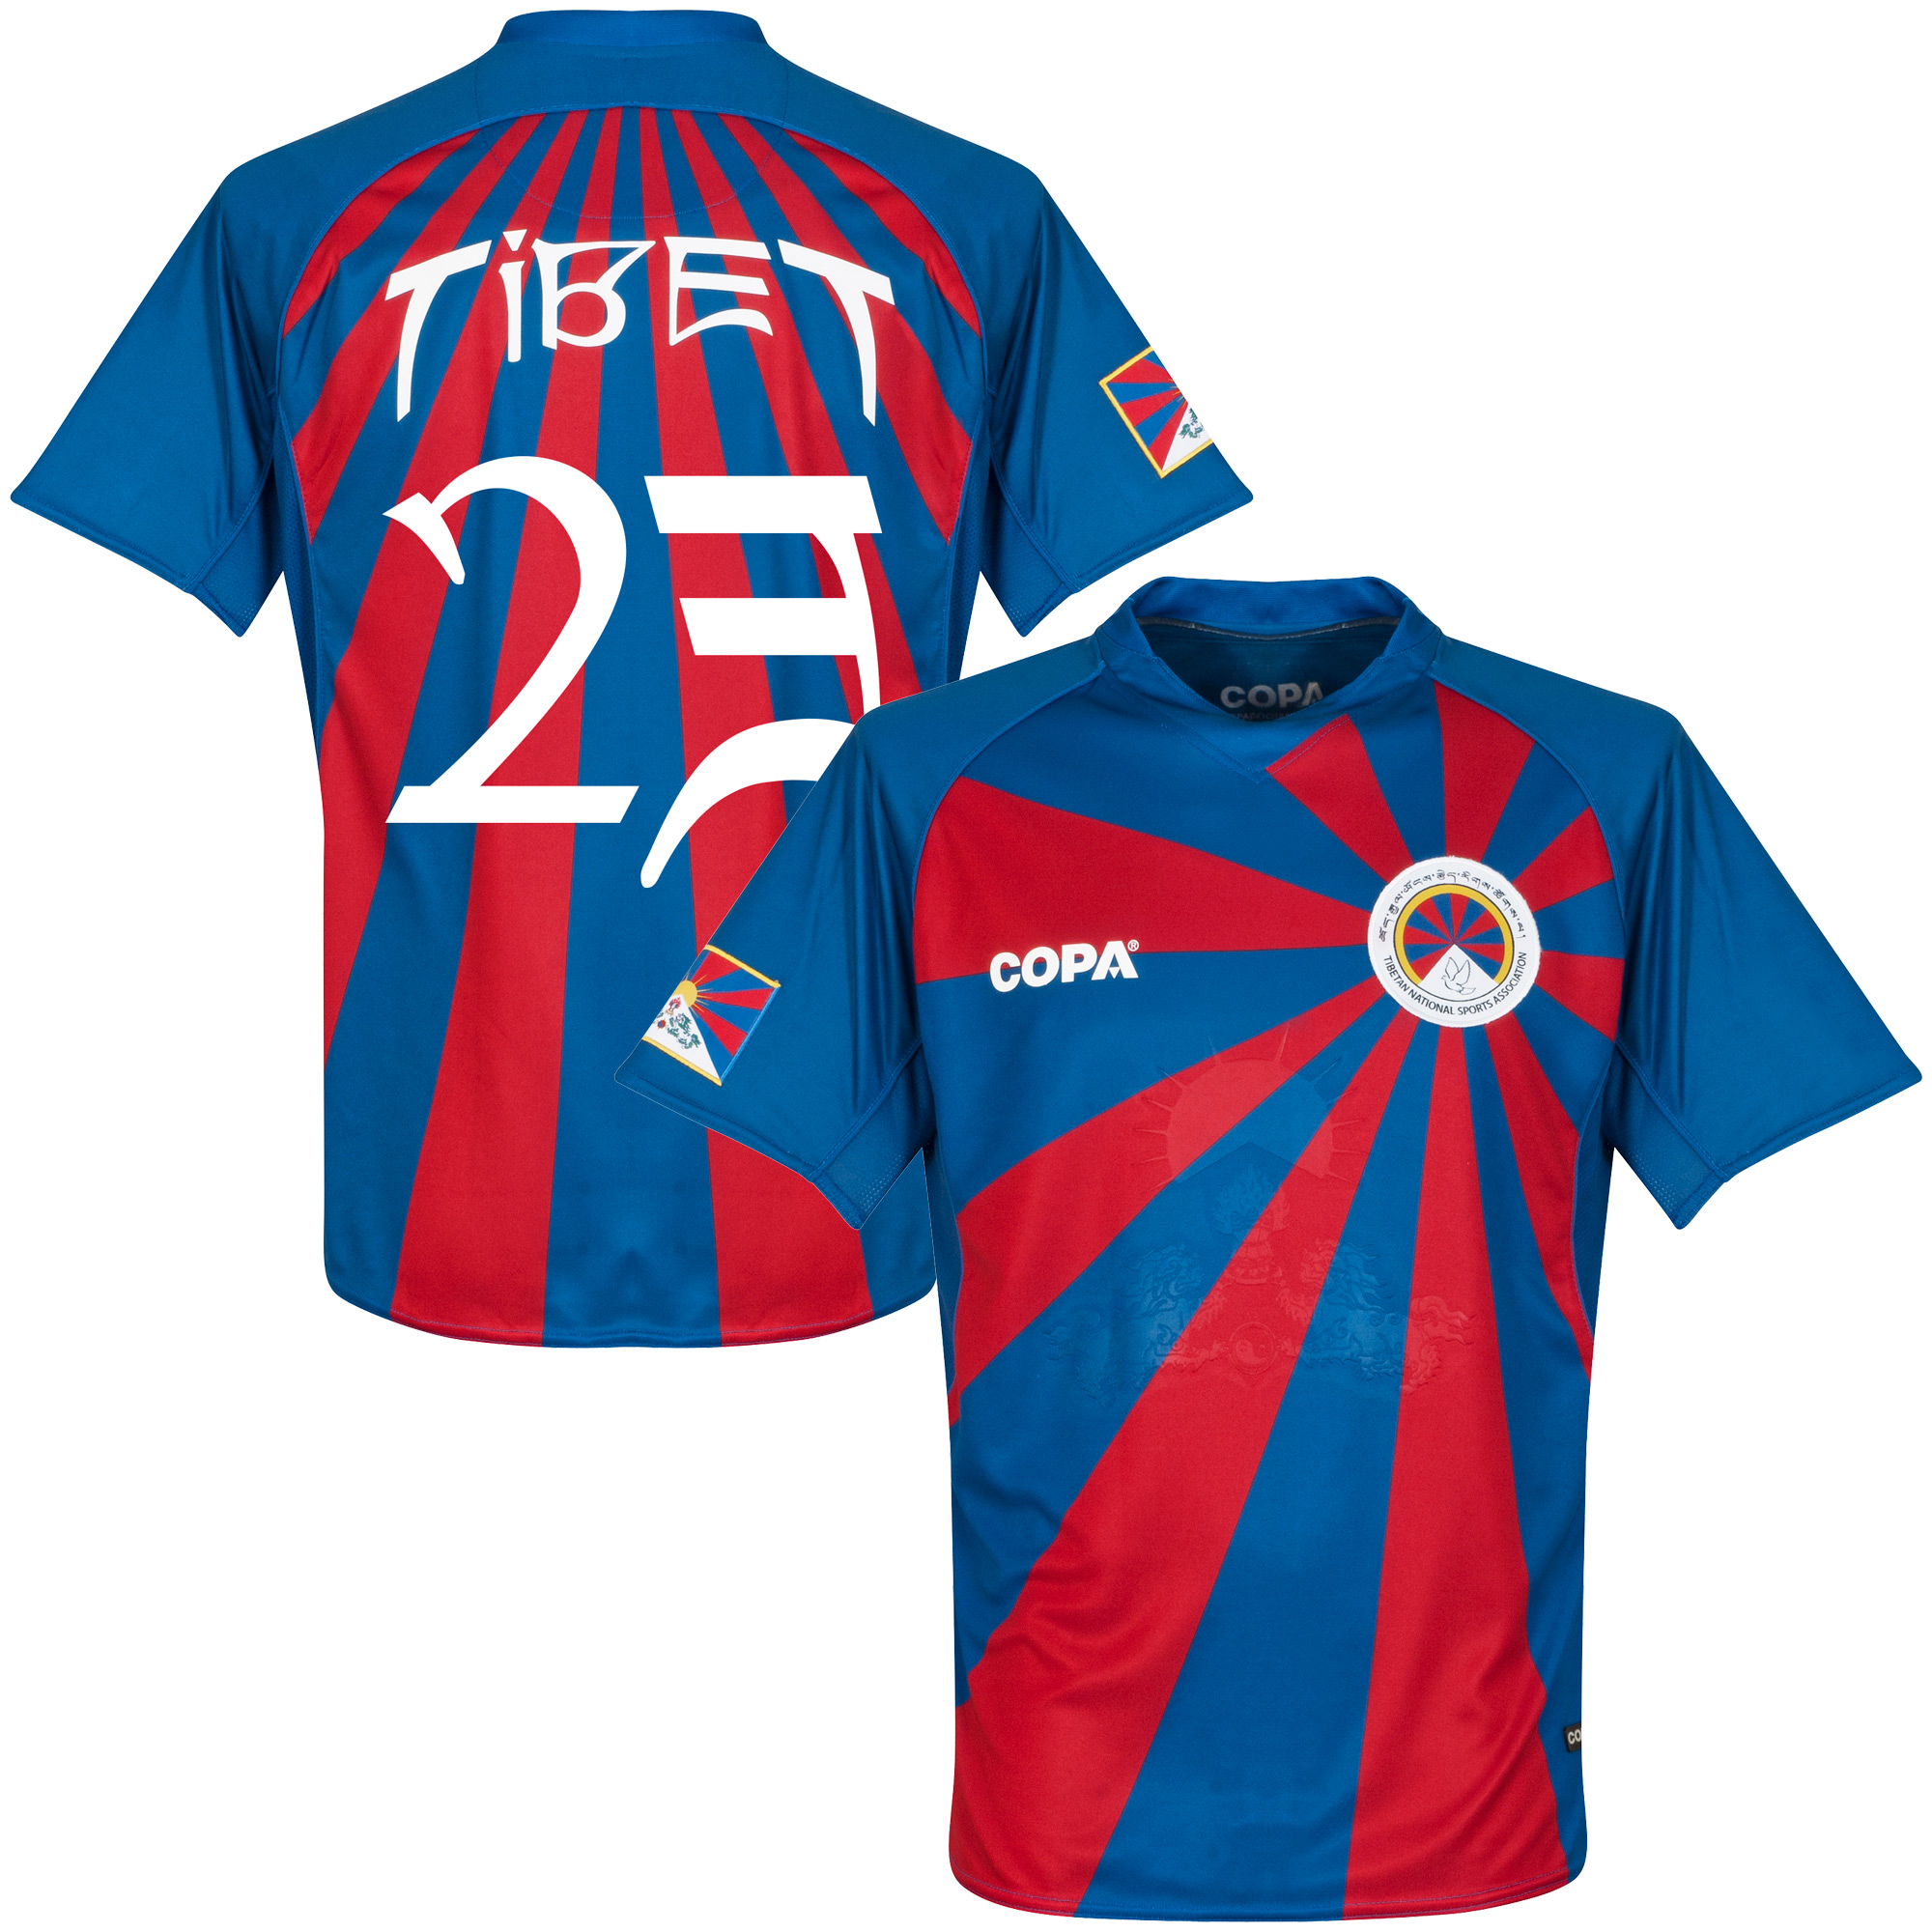 11-12 Tibet Home Jersey + 23 (Number Only) - XXL